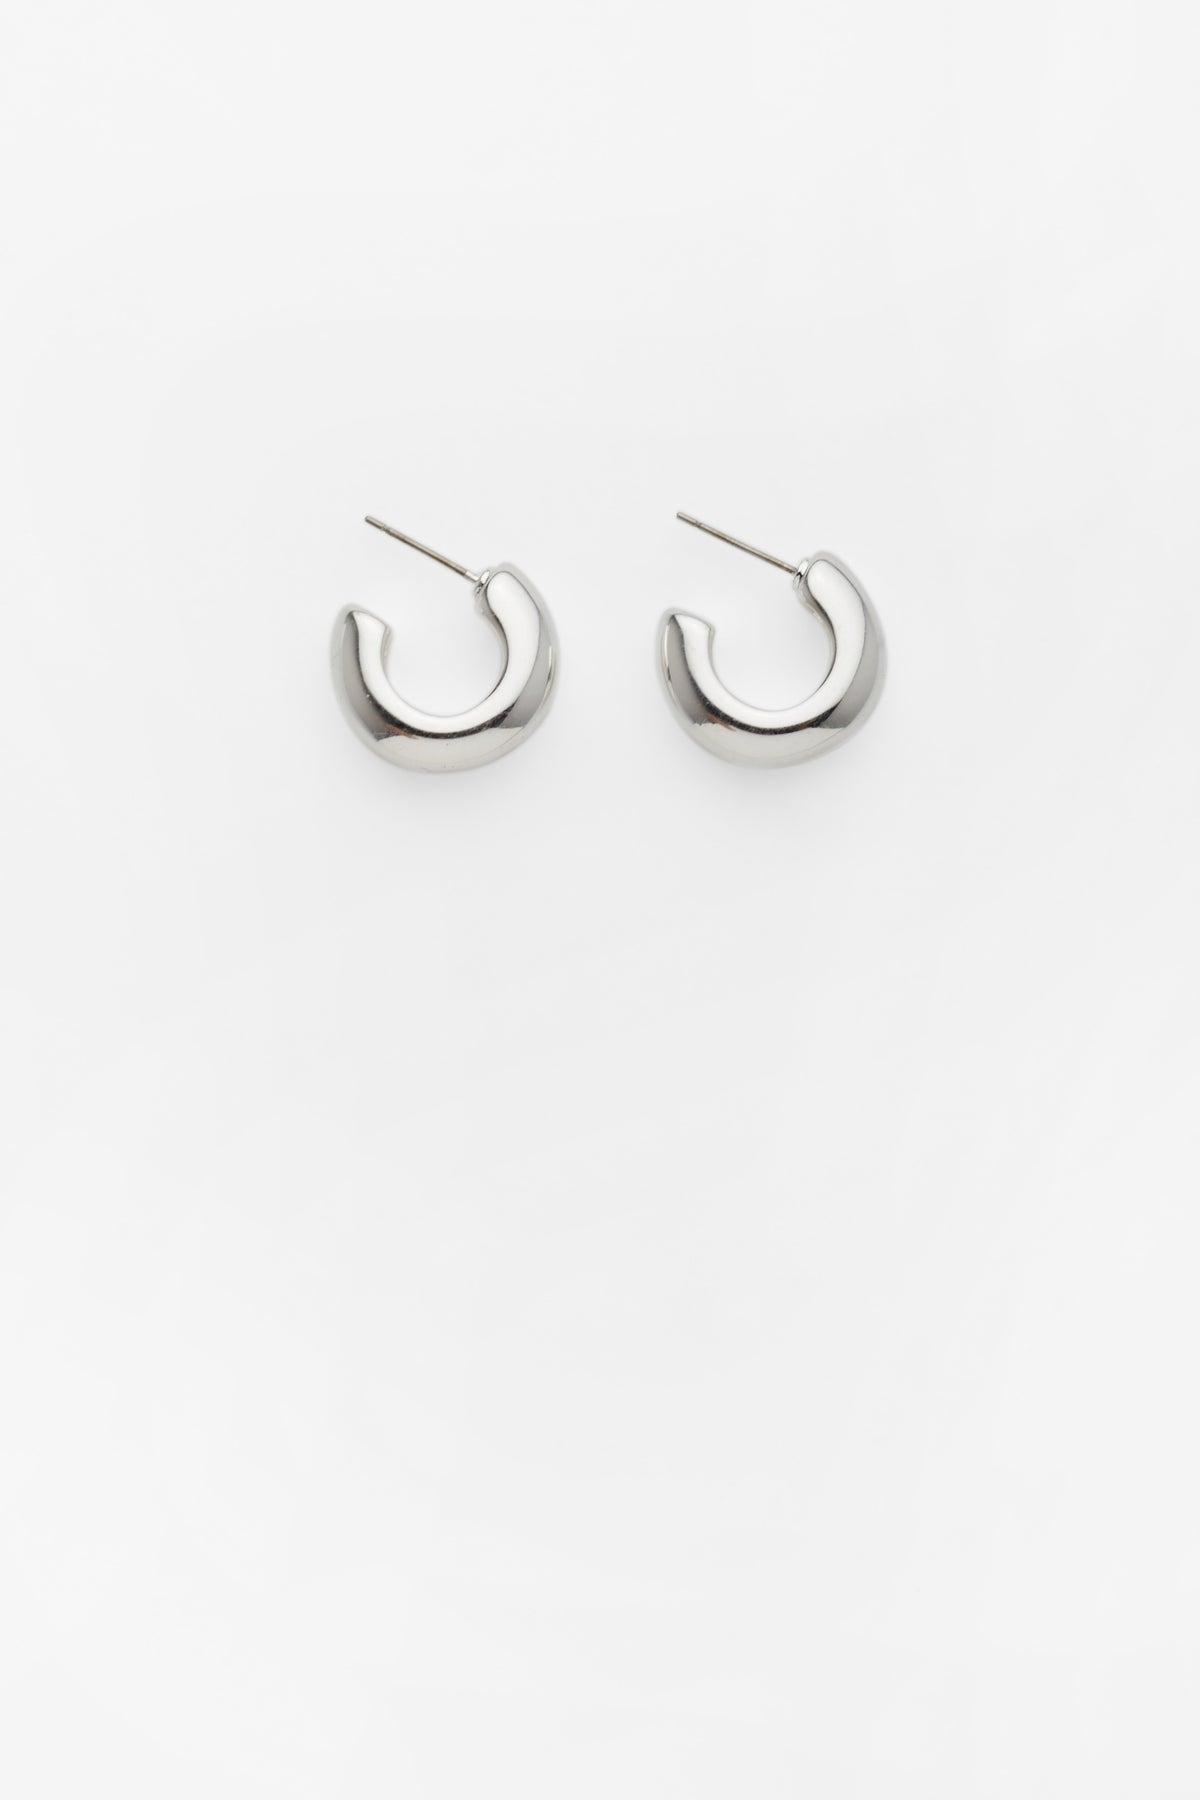 Catch 22 Hoops Silver